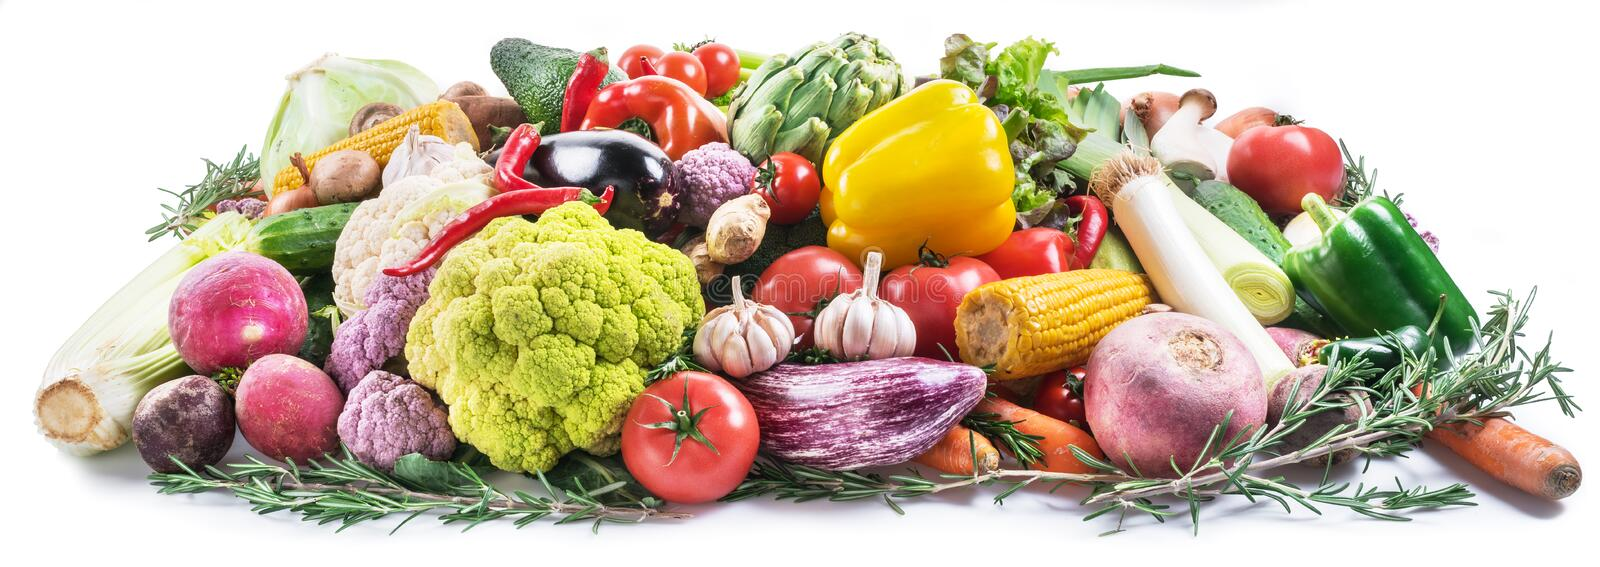 Group of colorful vegetables on white background. Close-up royalty free stock image